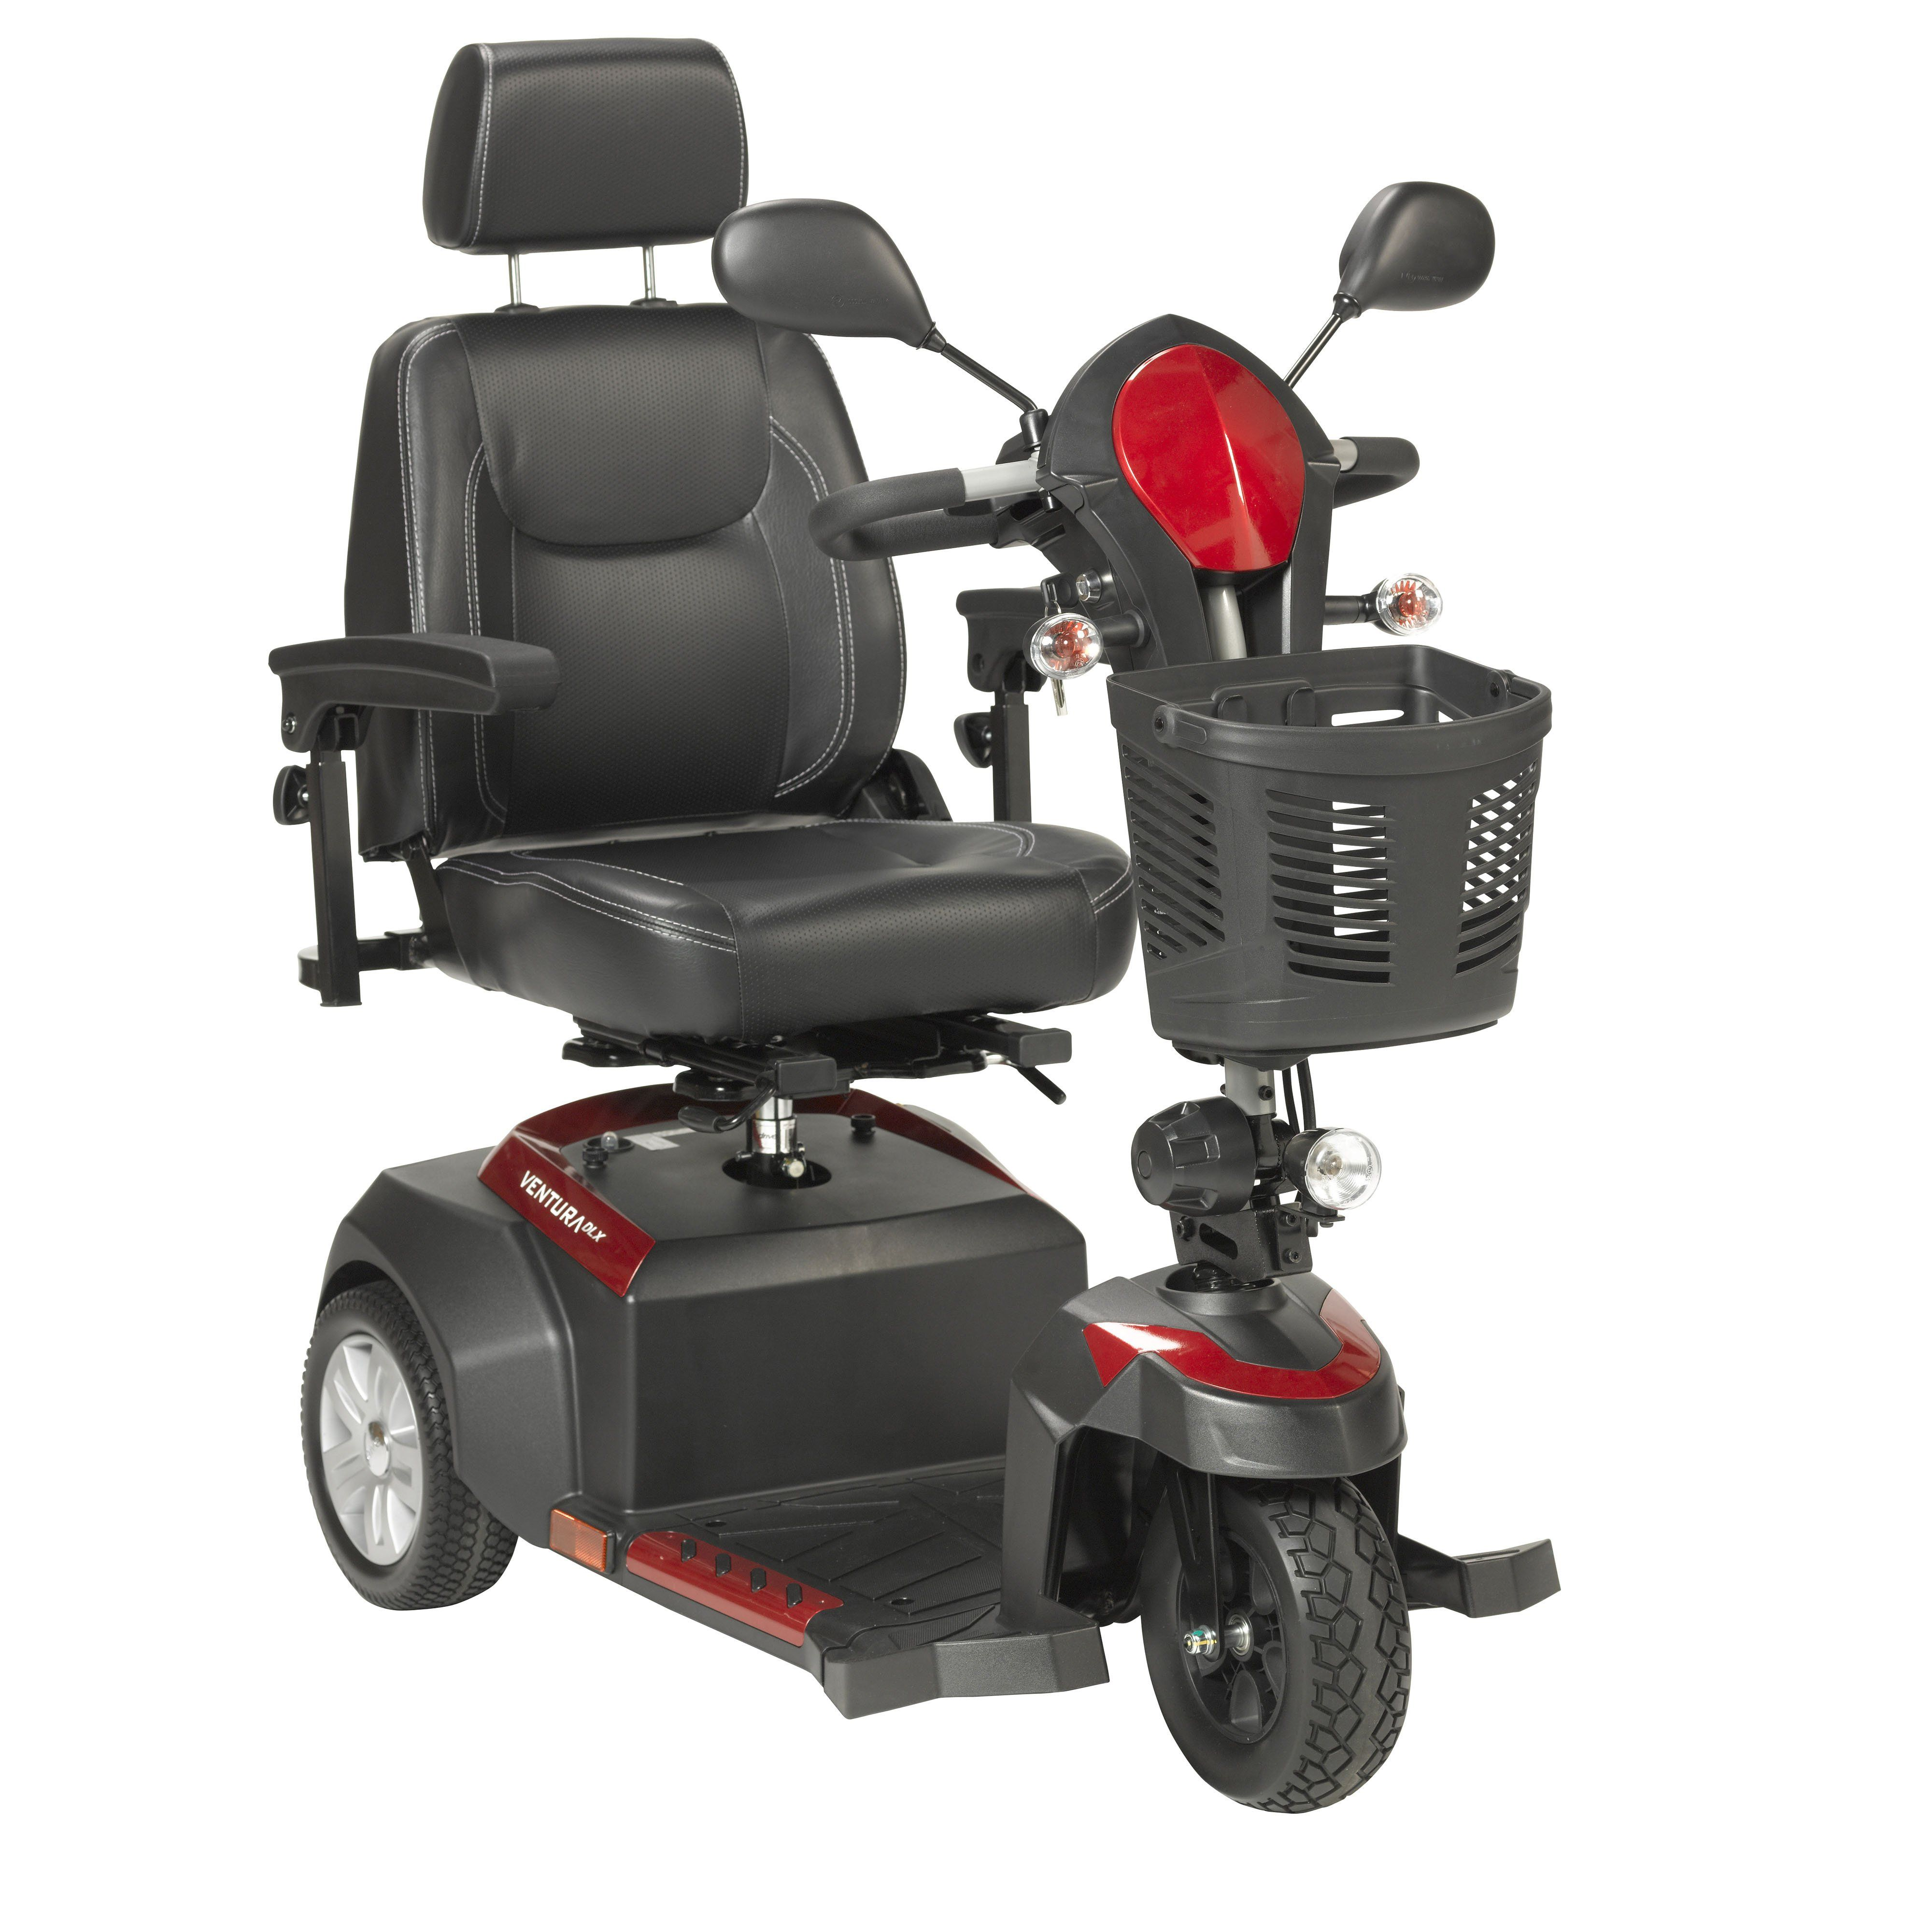 Drive Ventura DLX 3Wheel Electric scooter for kids